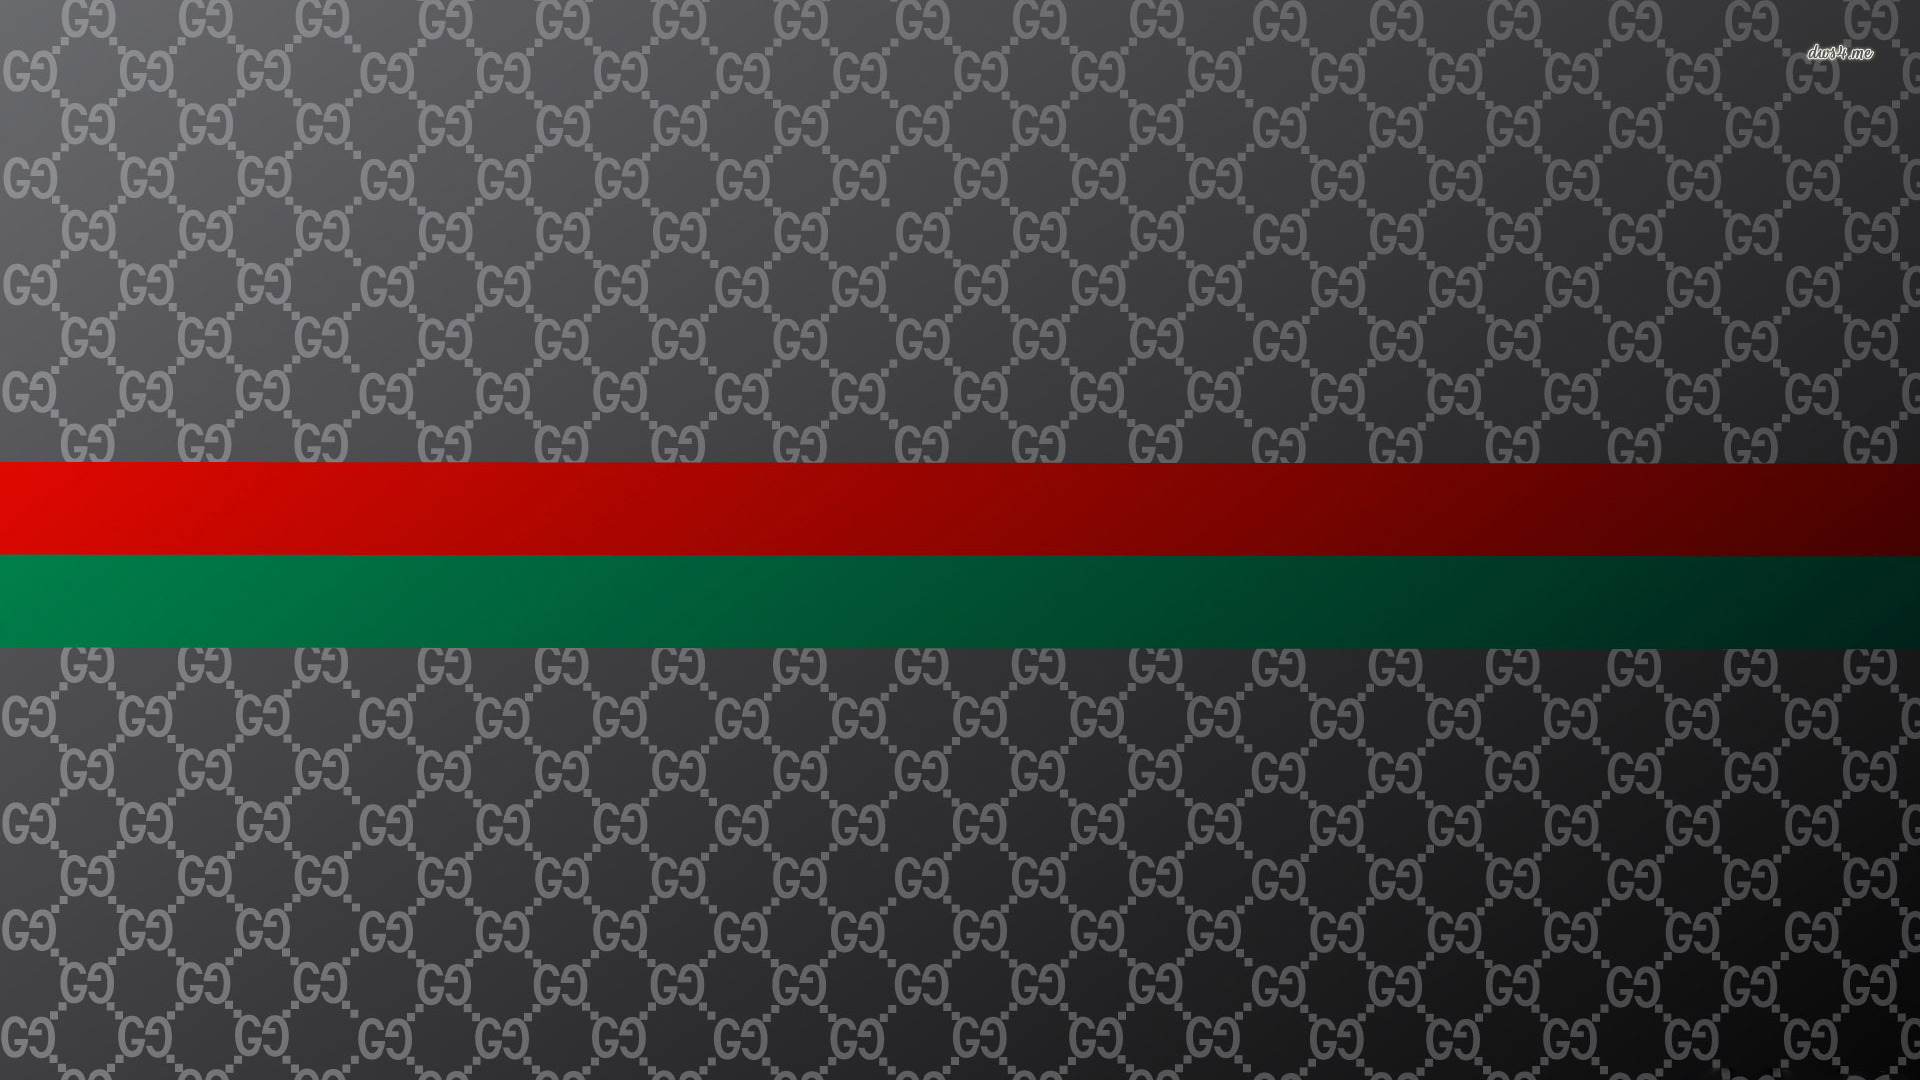 Gucci wallpaper | 1920x1080 | #81171